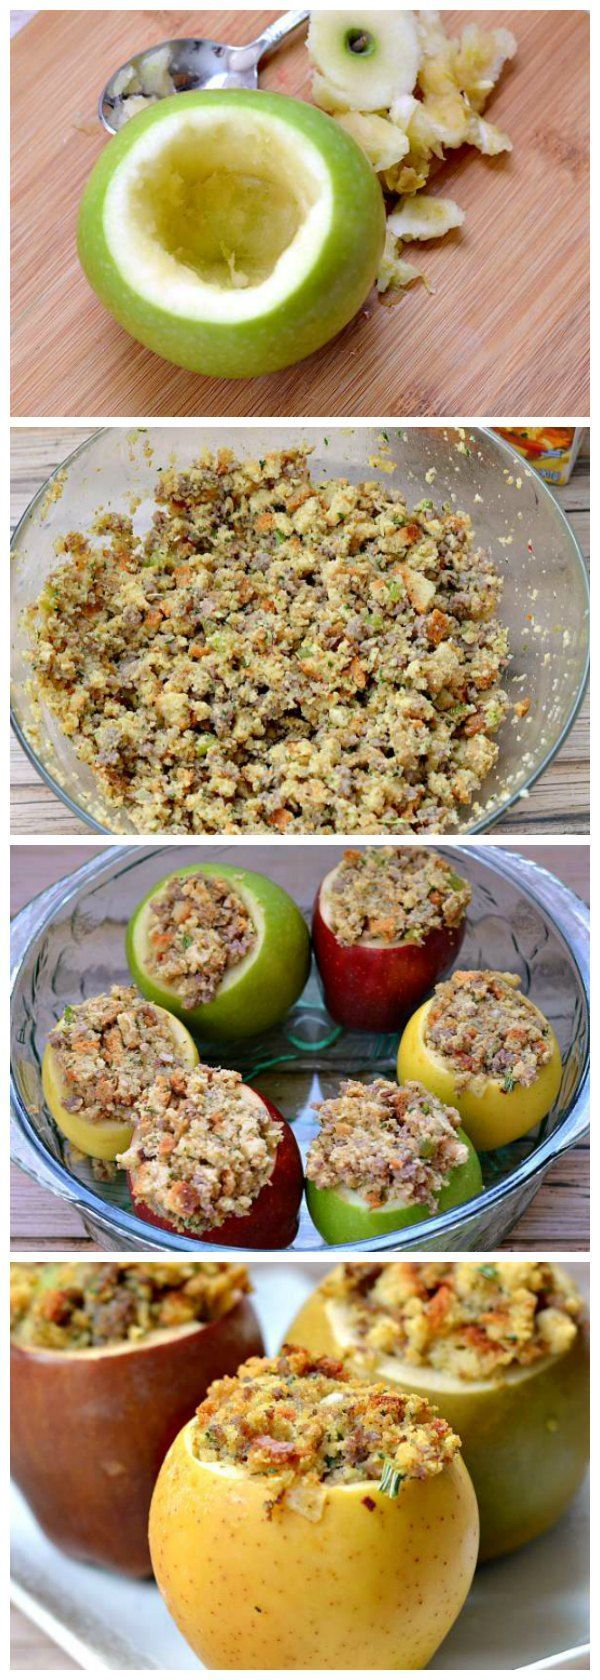 Easy Baked Apples Are Made In The Oven And Stuffed With A Sausage Stuffing  Mix